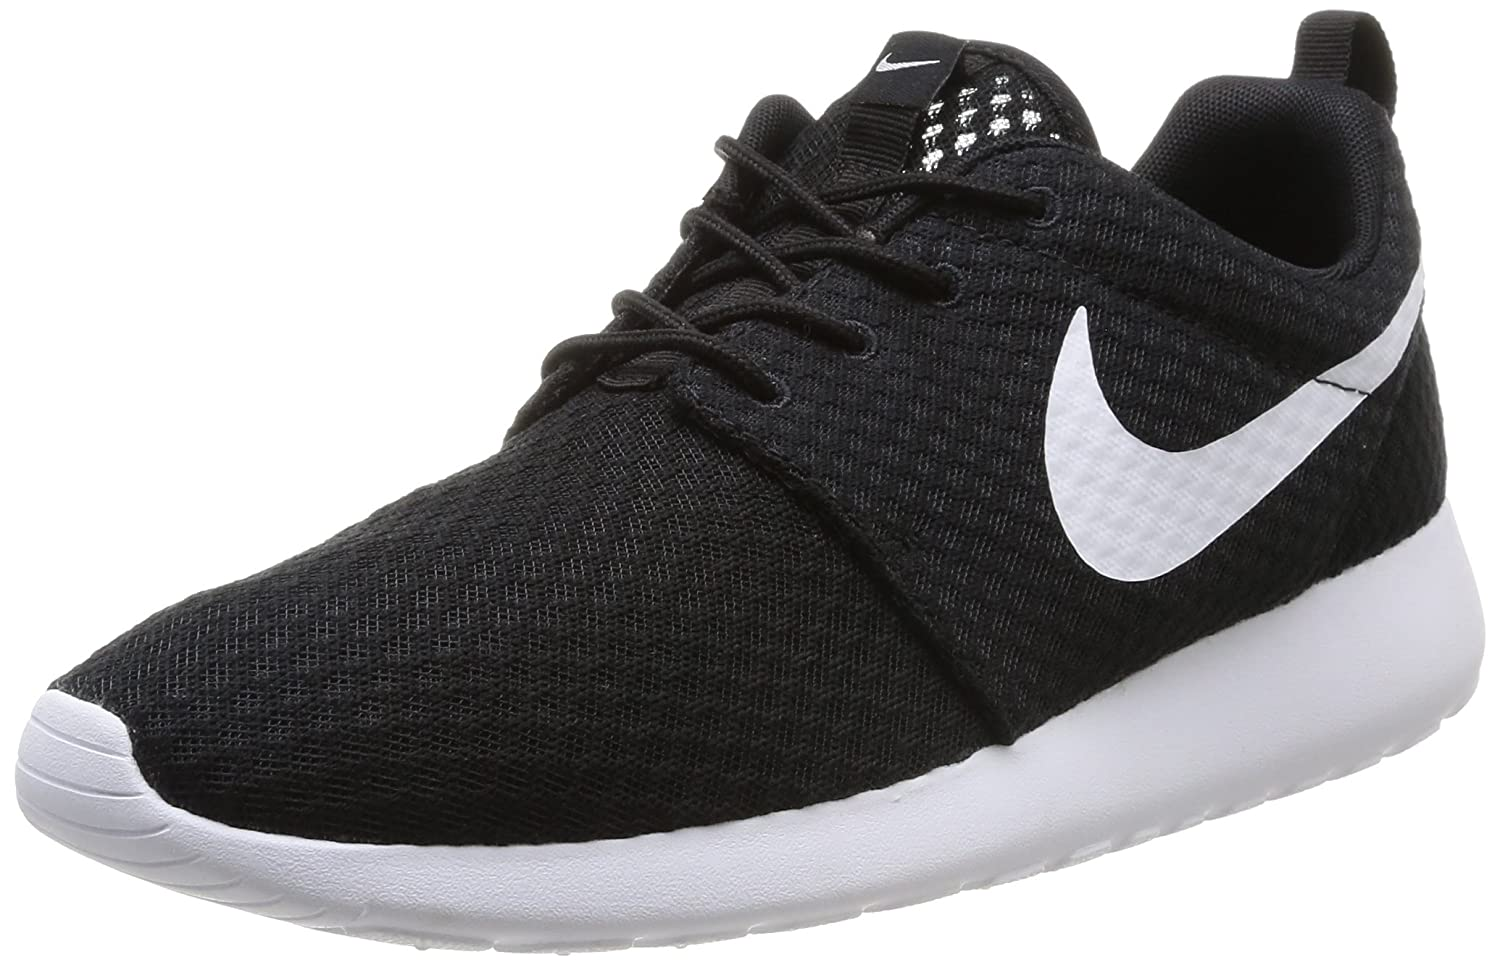 eb7c30ba5a12b Nike WMNS Roshe One Winter - Women s Sports Shoes Size  4 UK (M) Black   Amazon.co.uk  Shoes   Bags